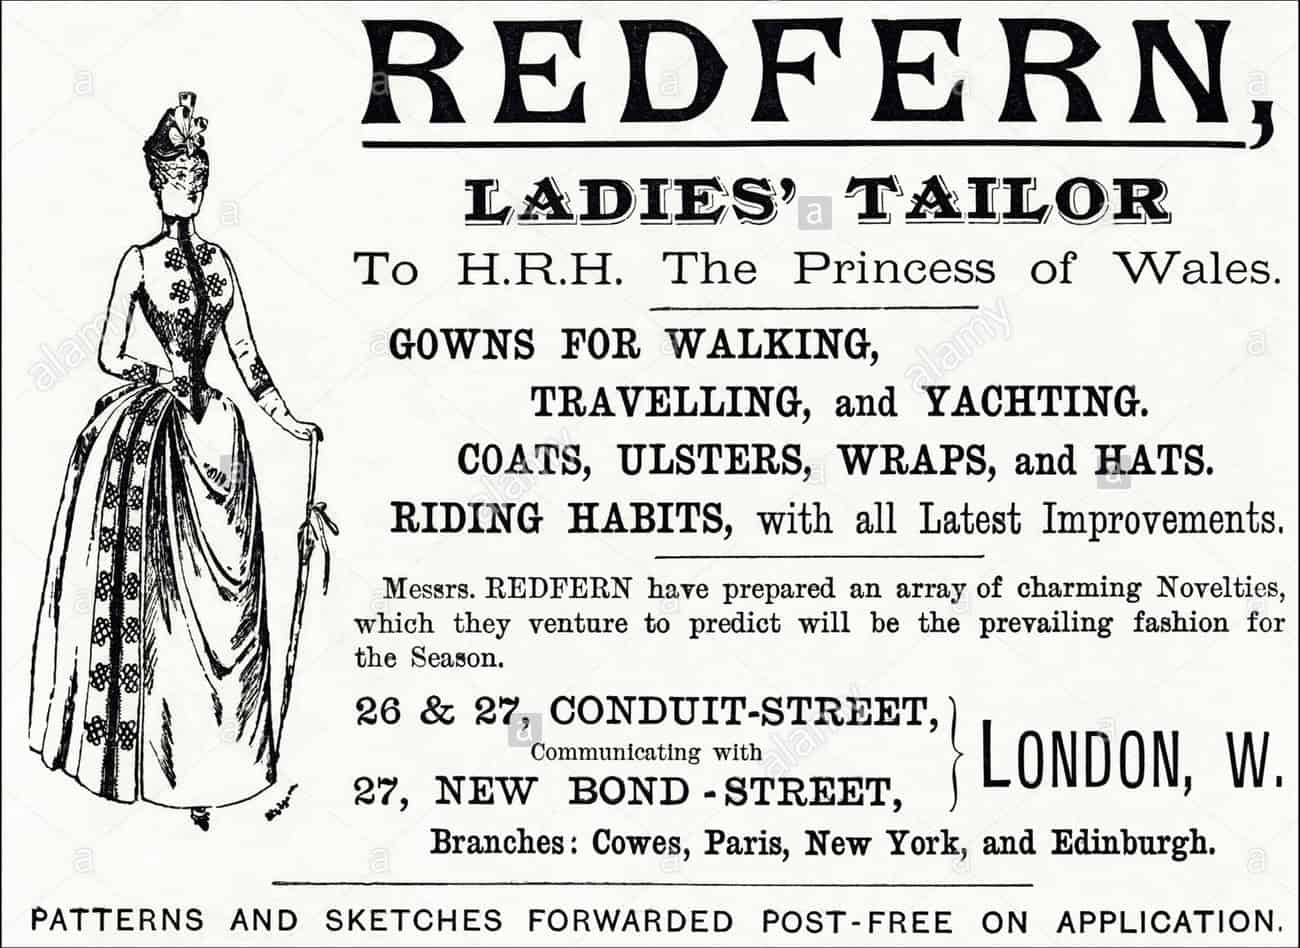 ad for Redfern suits, Conduit Street, Bond Street, Mayfair, Ballgowns to Bumsters Tour, Fashion Tours London, fashion walks and shopping tours for fashionistas